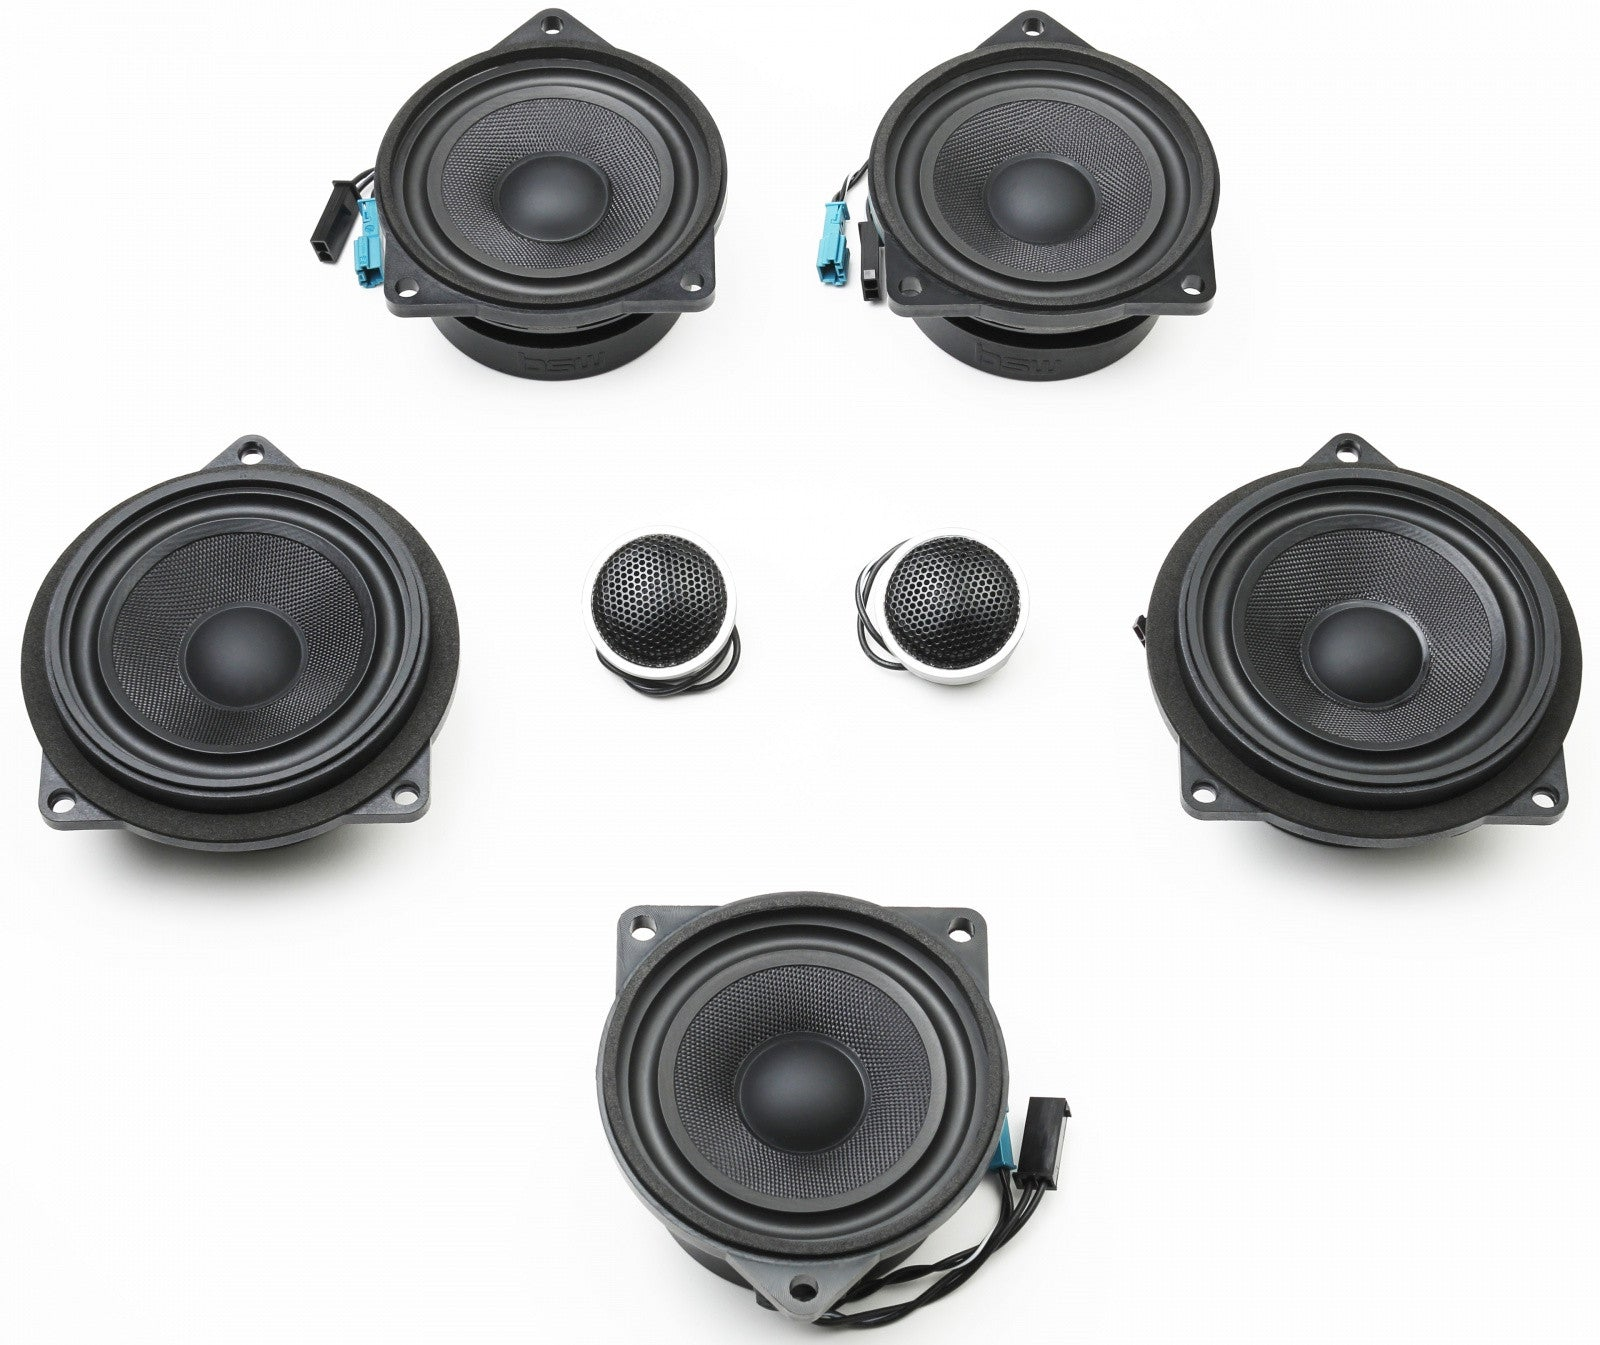 Bmw Speakers Mb Quart Qm2003 Amazoncouk Electronics Stage One Speaker Upgrade Kit Engineered For Your Specific 1600x1345